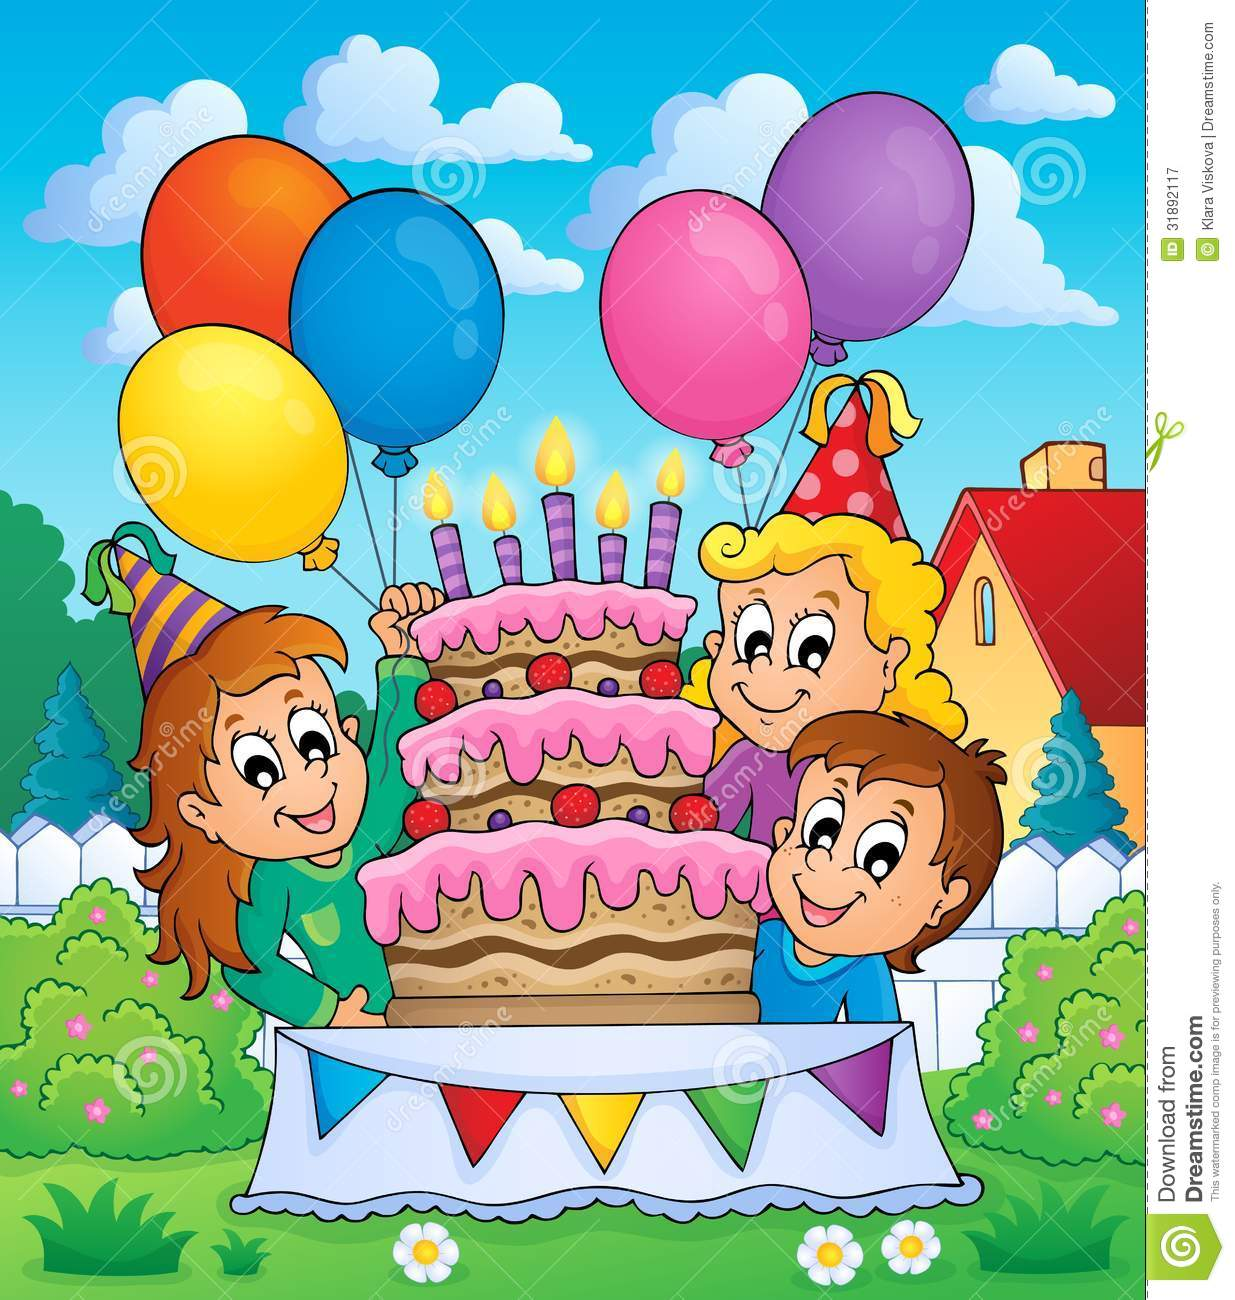 Eps10 Illustration Kids Party Vector Draw Drawing Balloons Happiness